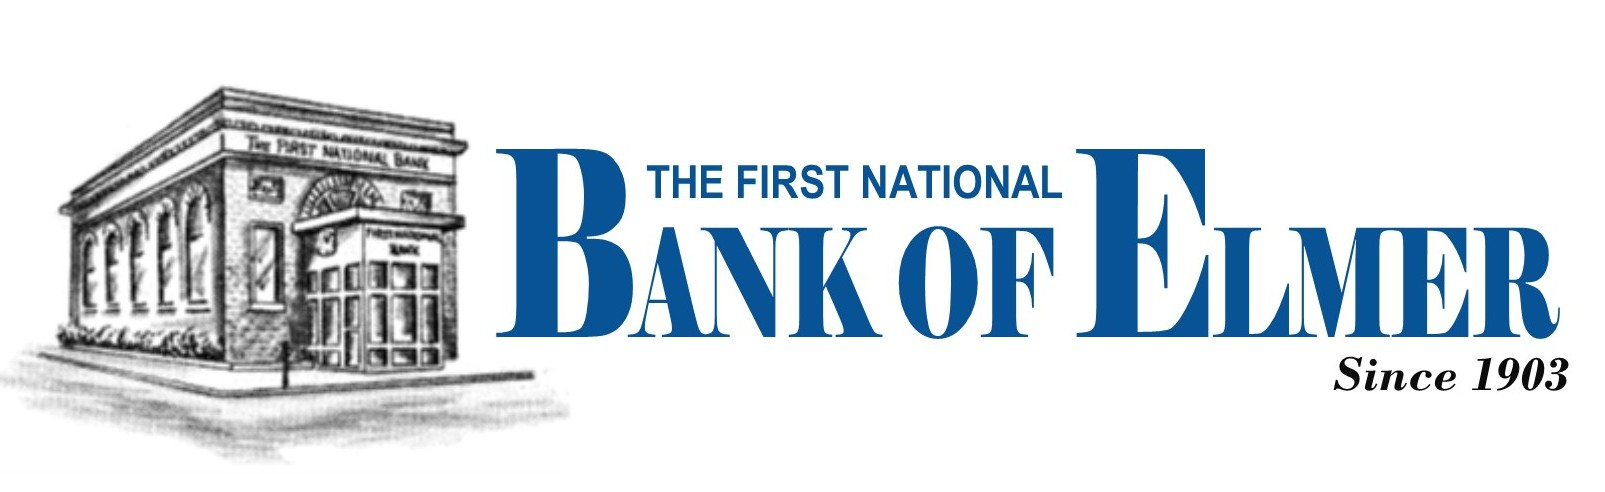 First National Bank of Elmer logo